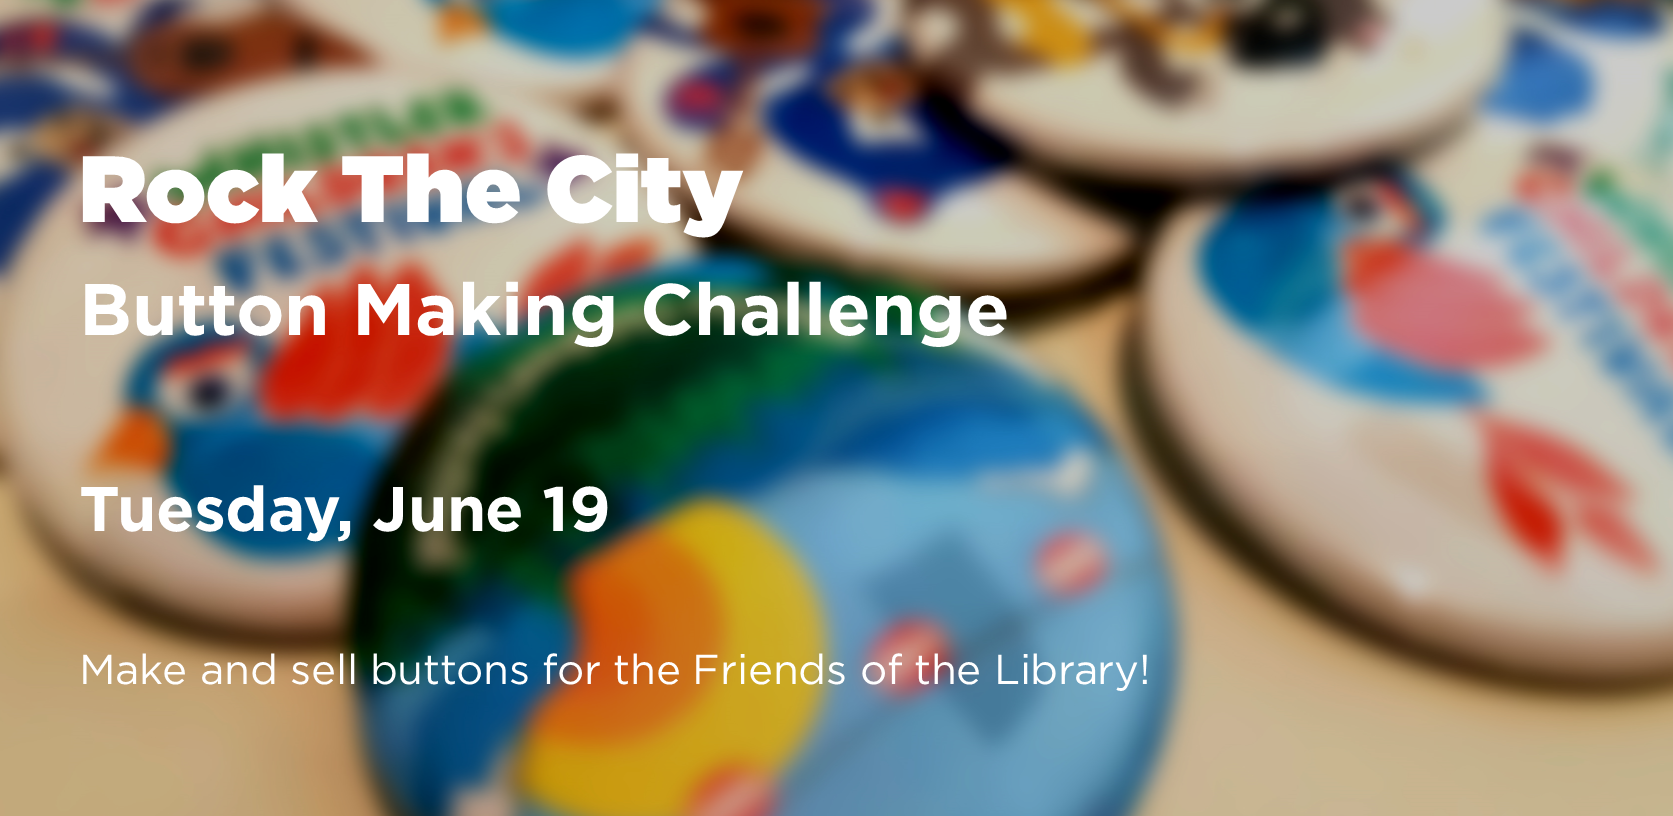 Rock the City Button Making Challenge